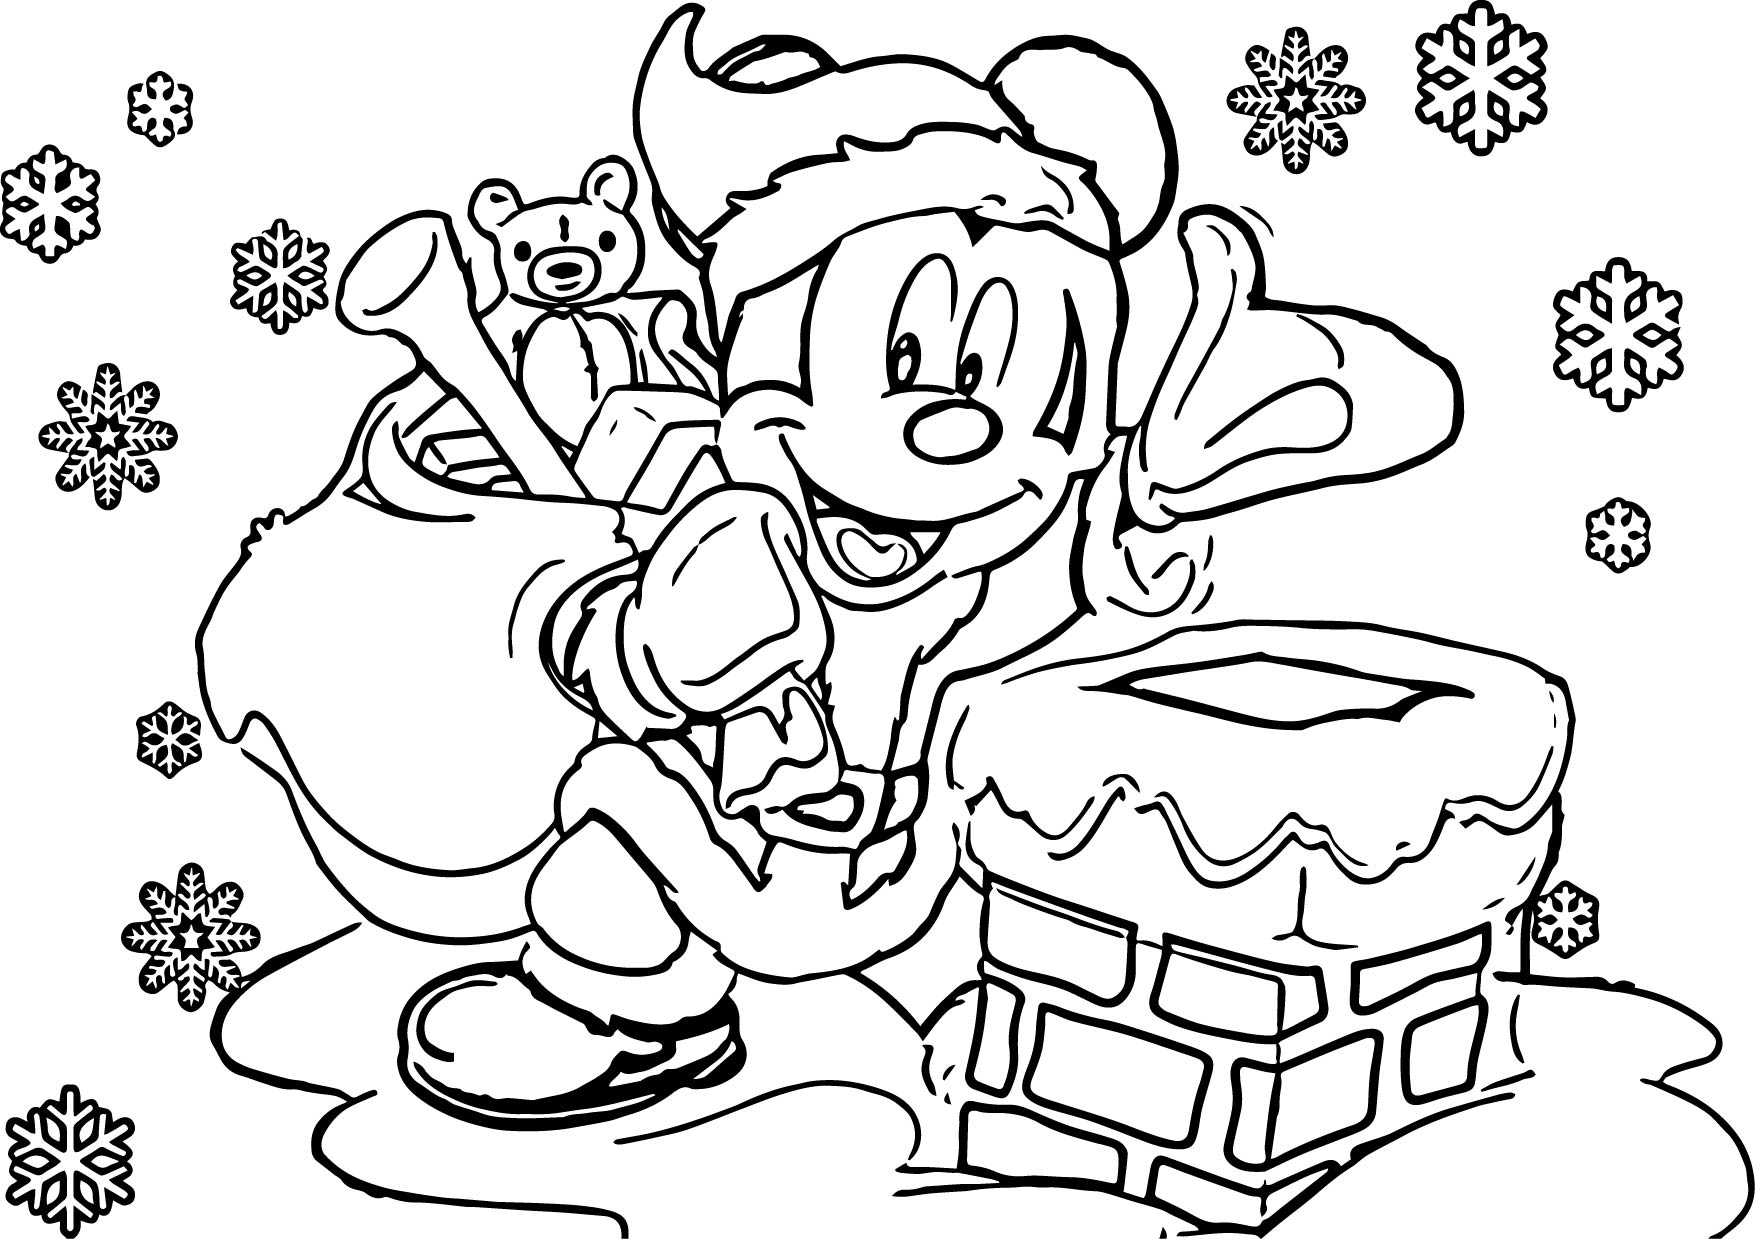 1755x1239 New Disney Princess Christmas Coloring Pages Gallery Printable